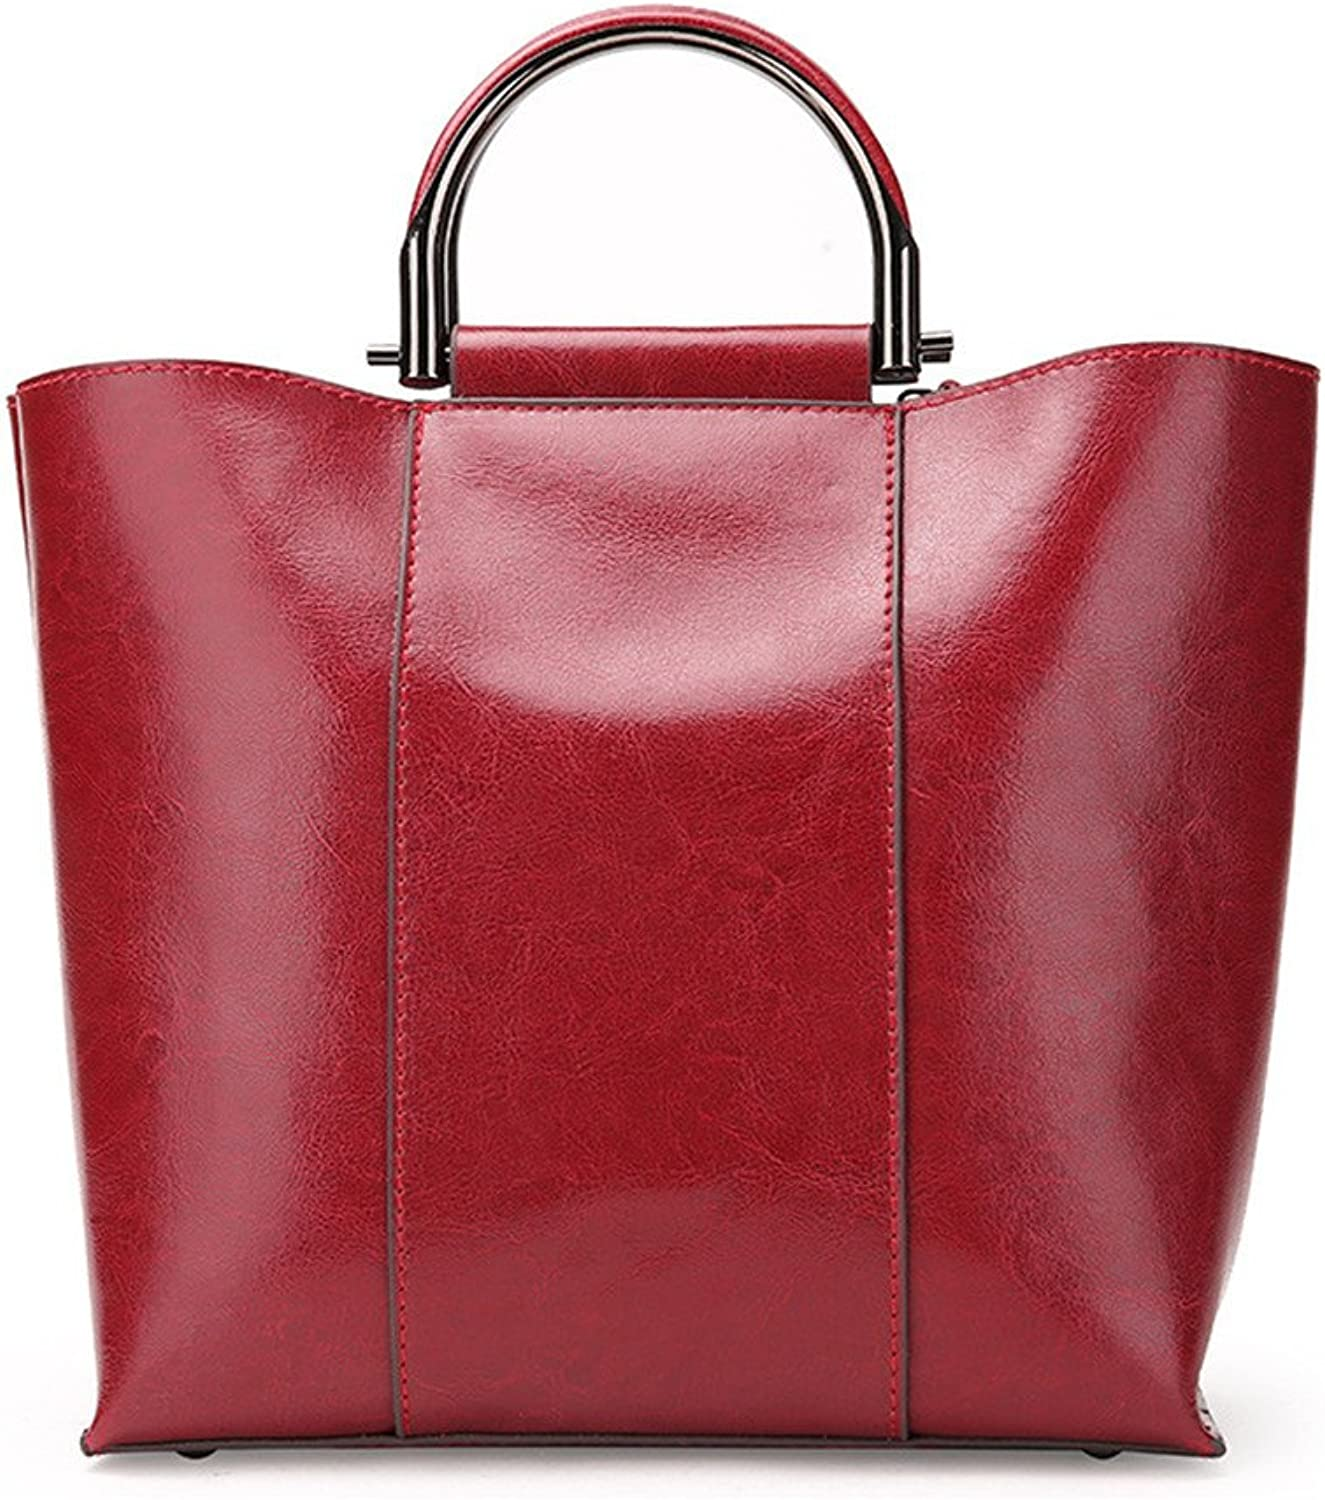 Sturdy Fashian Retro Oil Motorcycle Packages Atmosphere Simple Ms. Shoulder Diagonal Bags Women Oil Wax Handbags Wild color Combination Large Capacity (color   Red Wine)